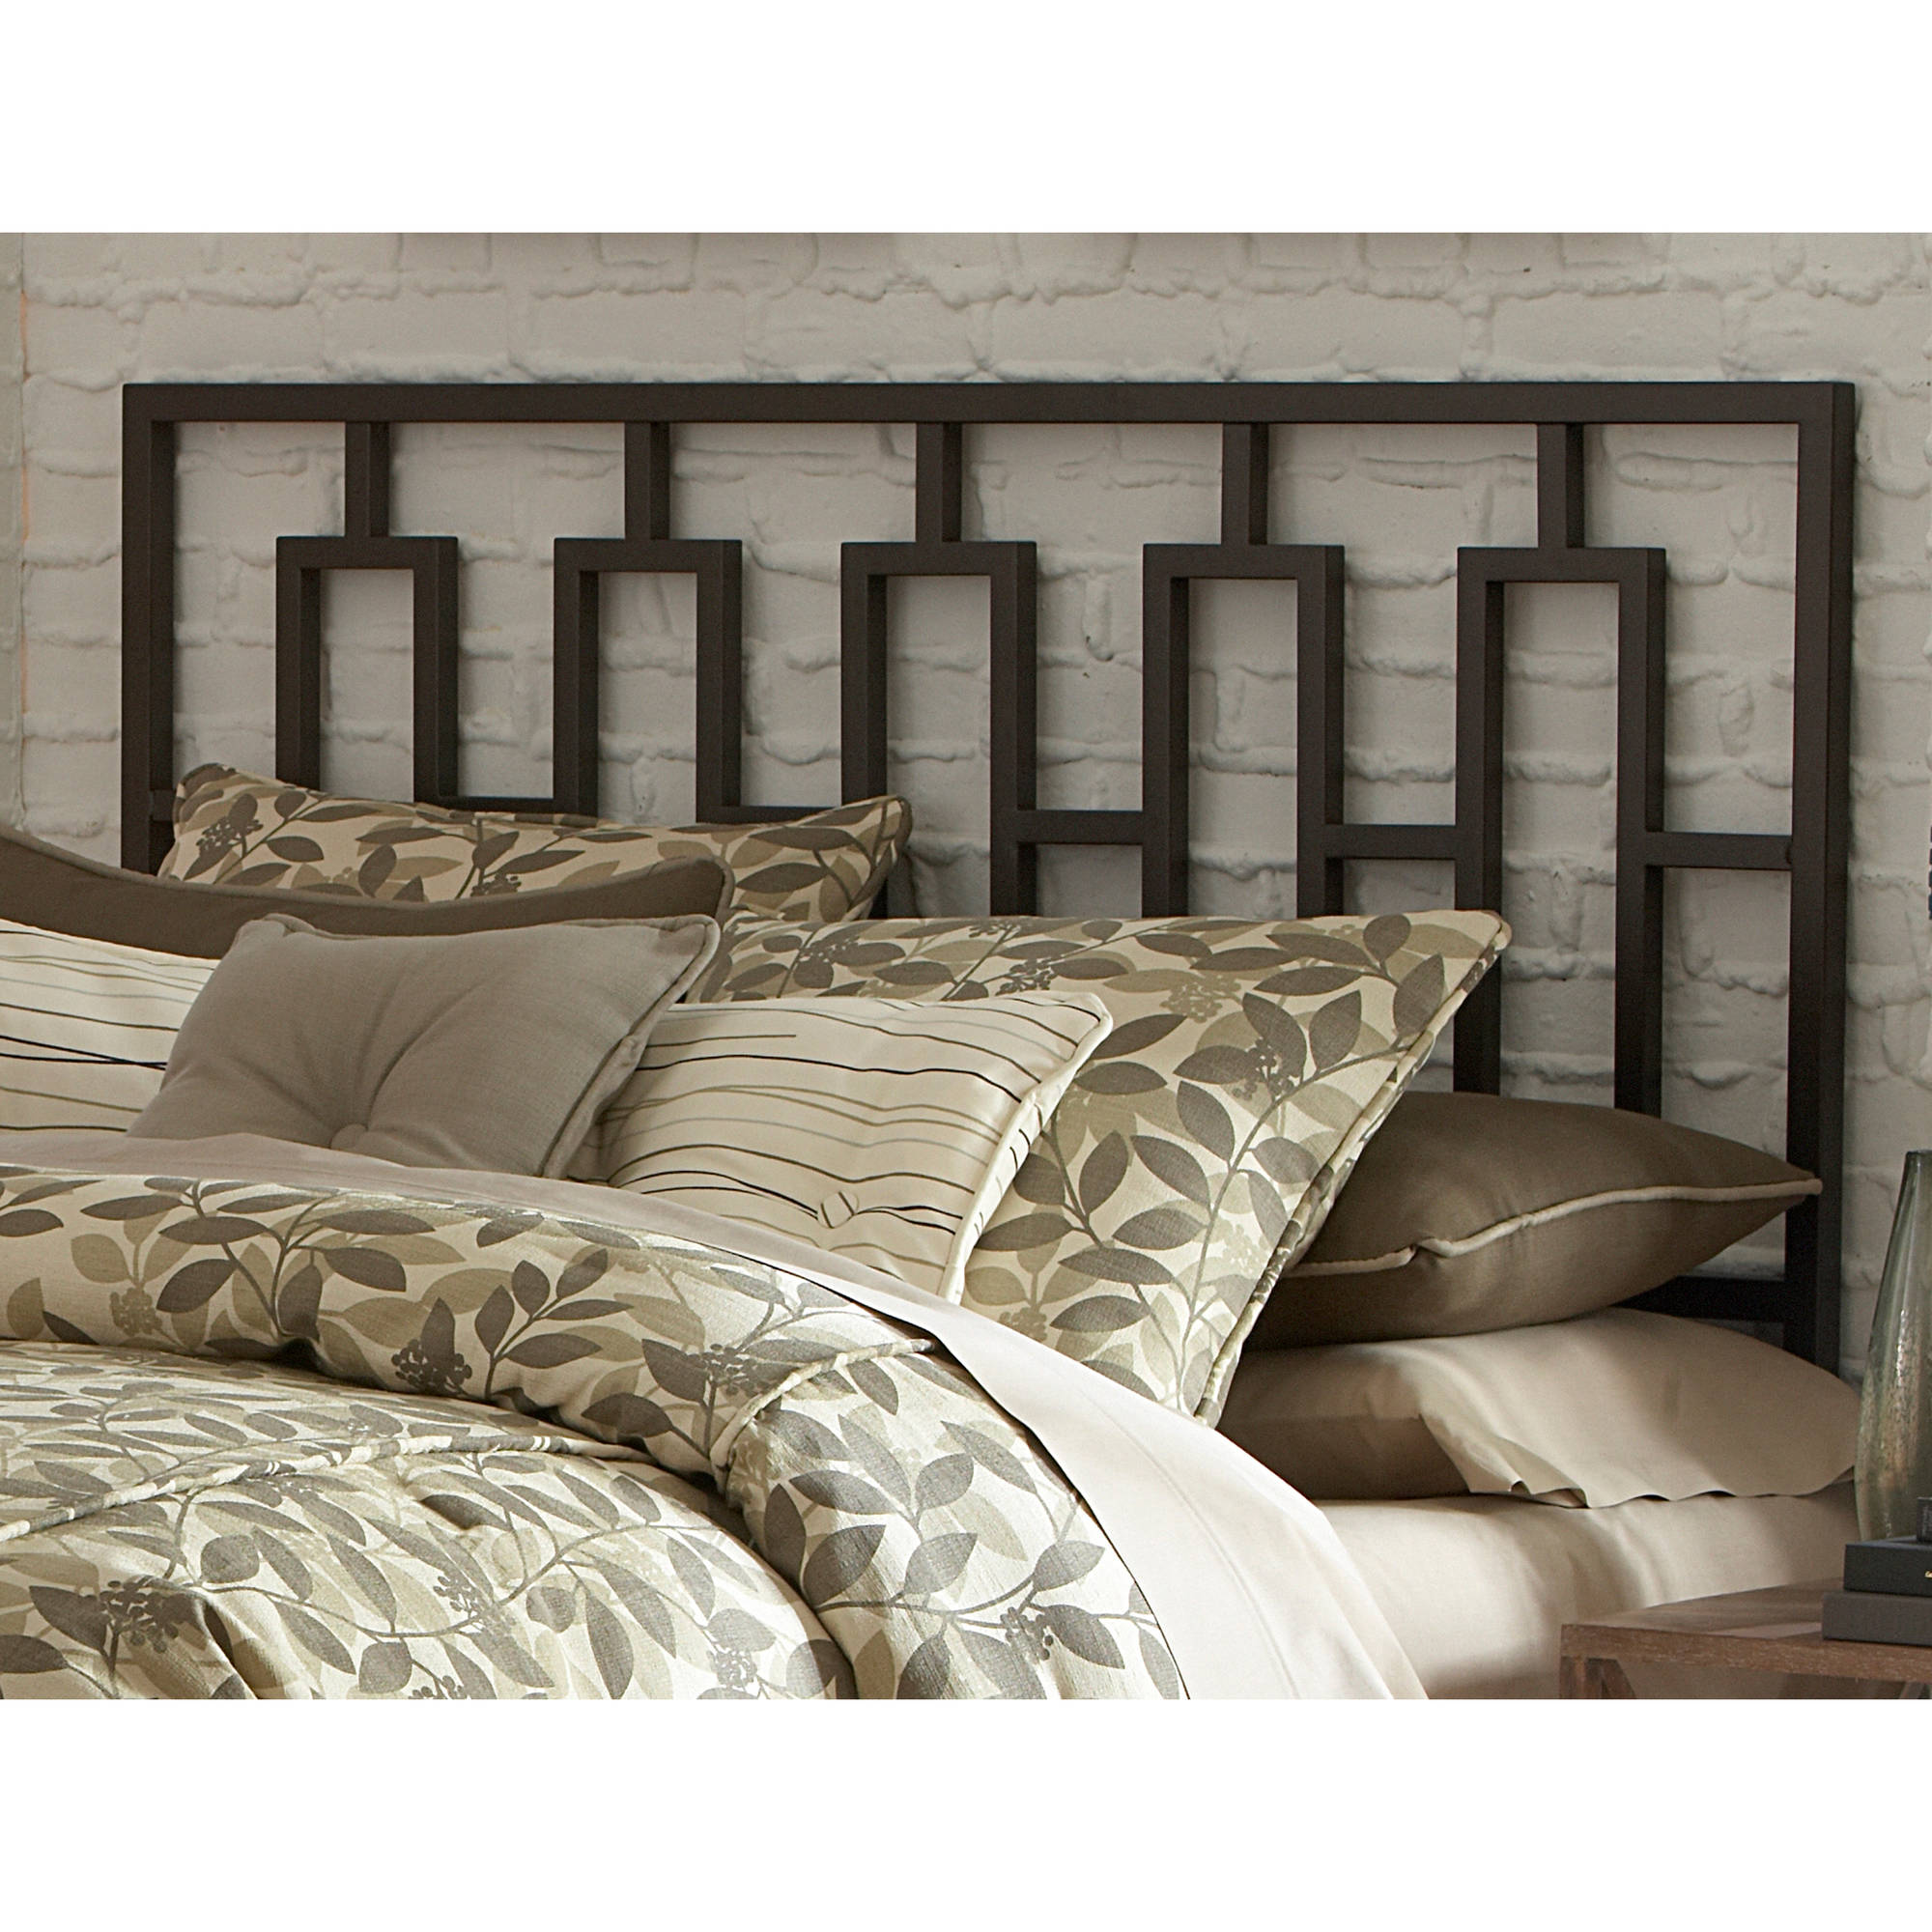 Modern Bedspreads | Versace Bed Set | King Headboards